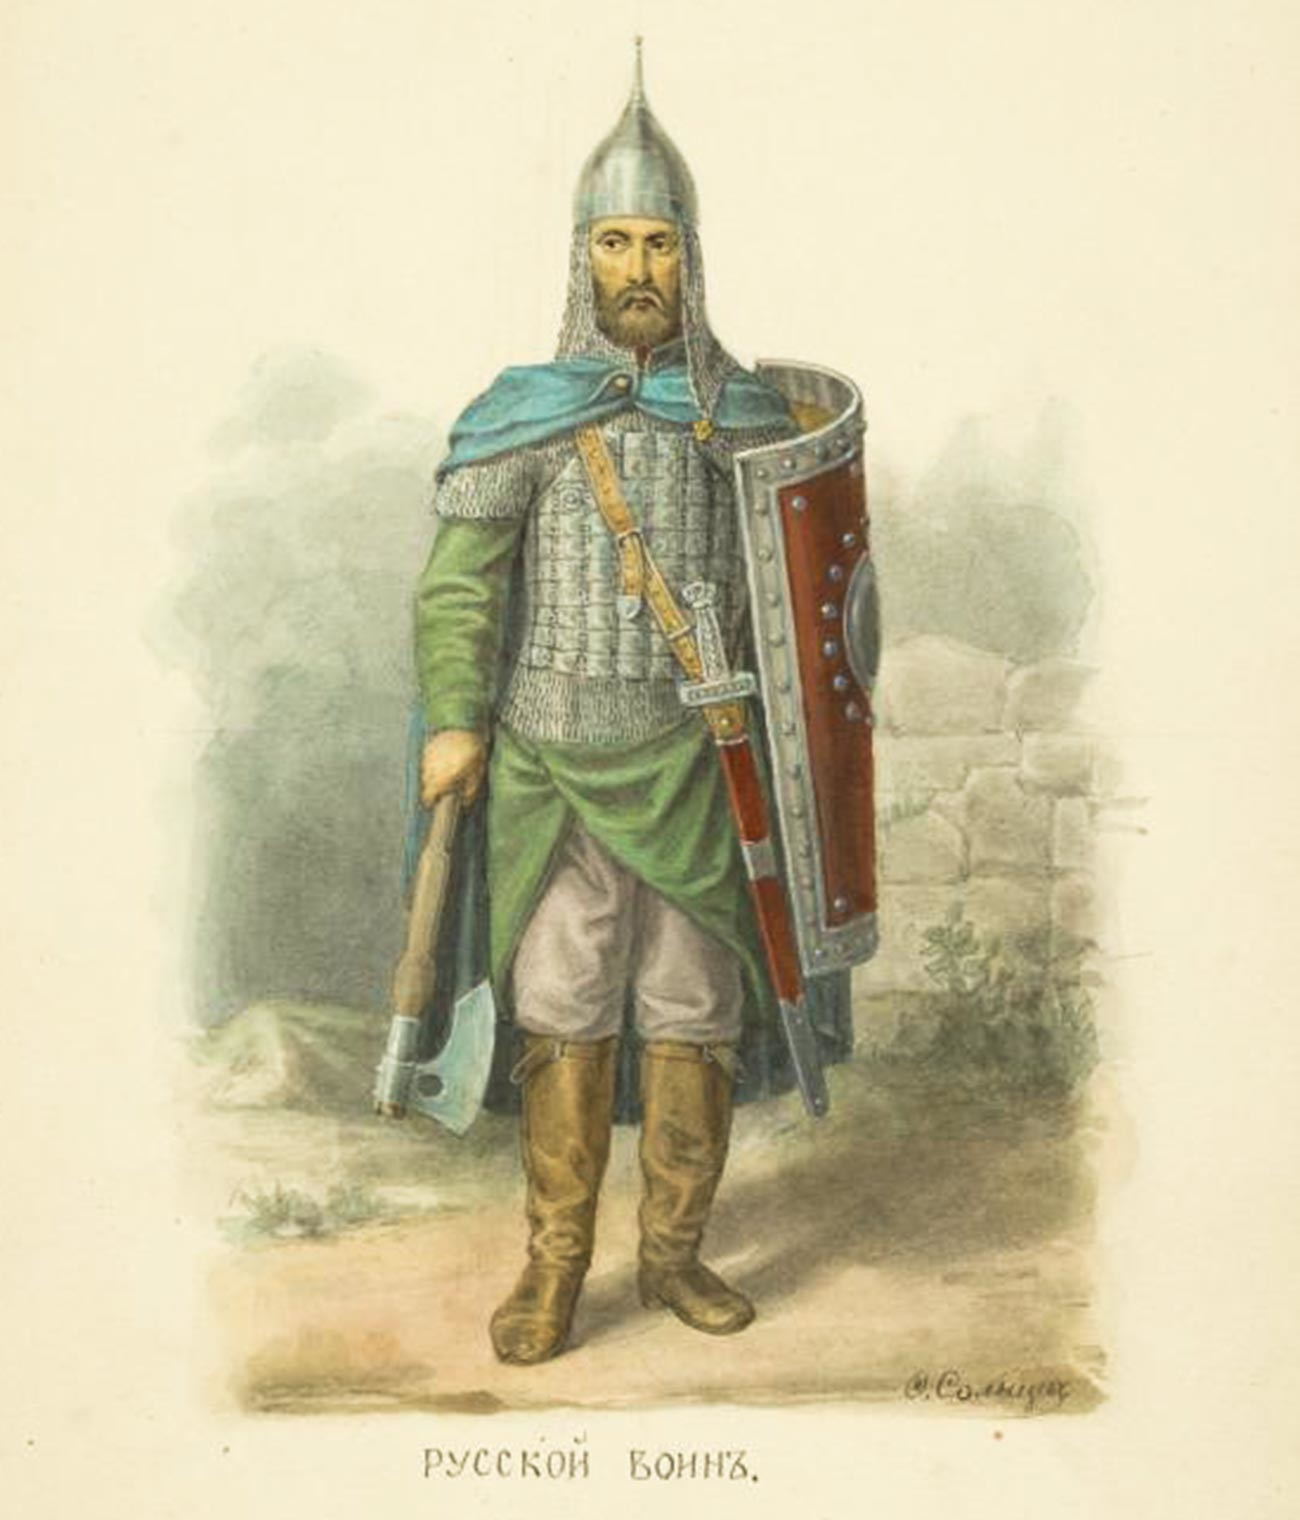 Fyodor Solntsev's reconstruction of an old Russian warrior